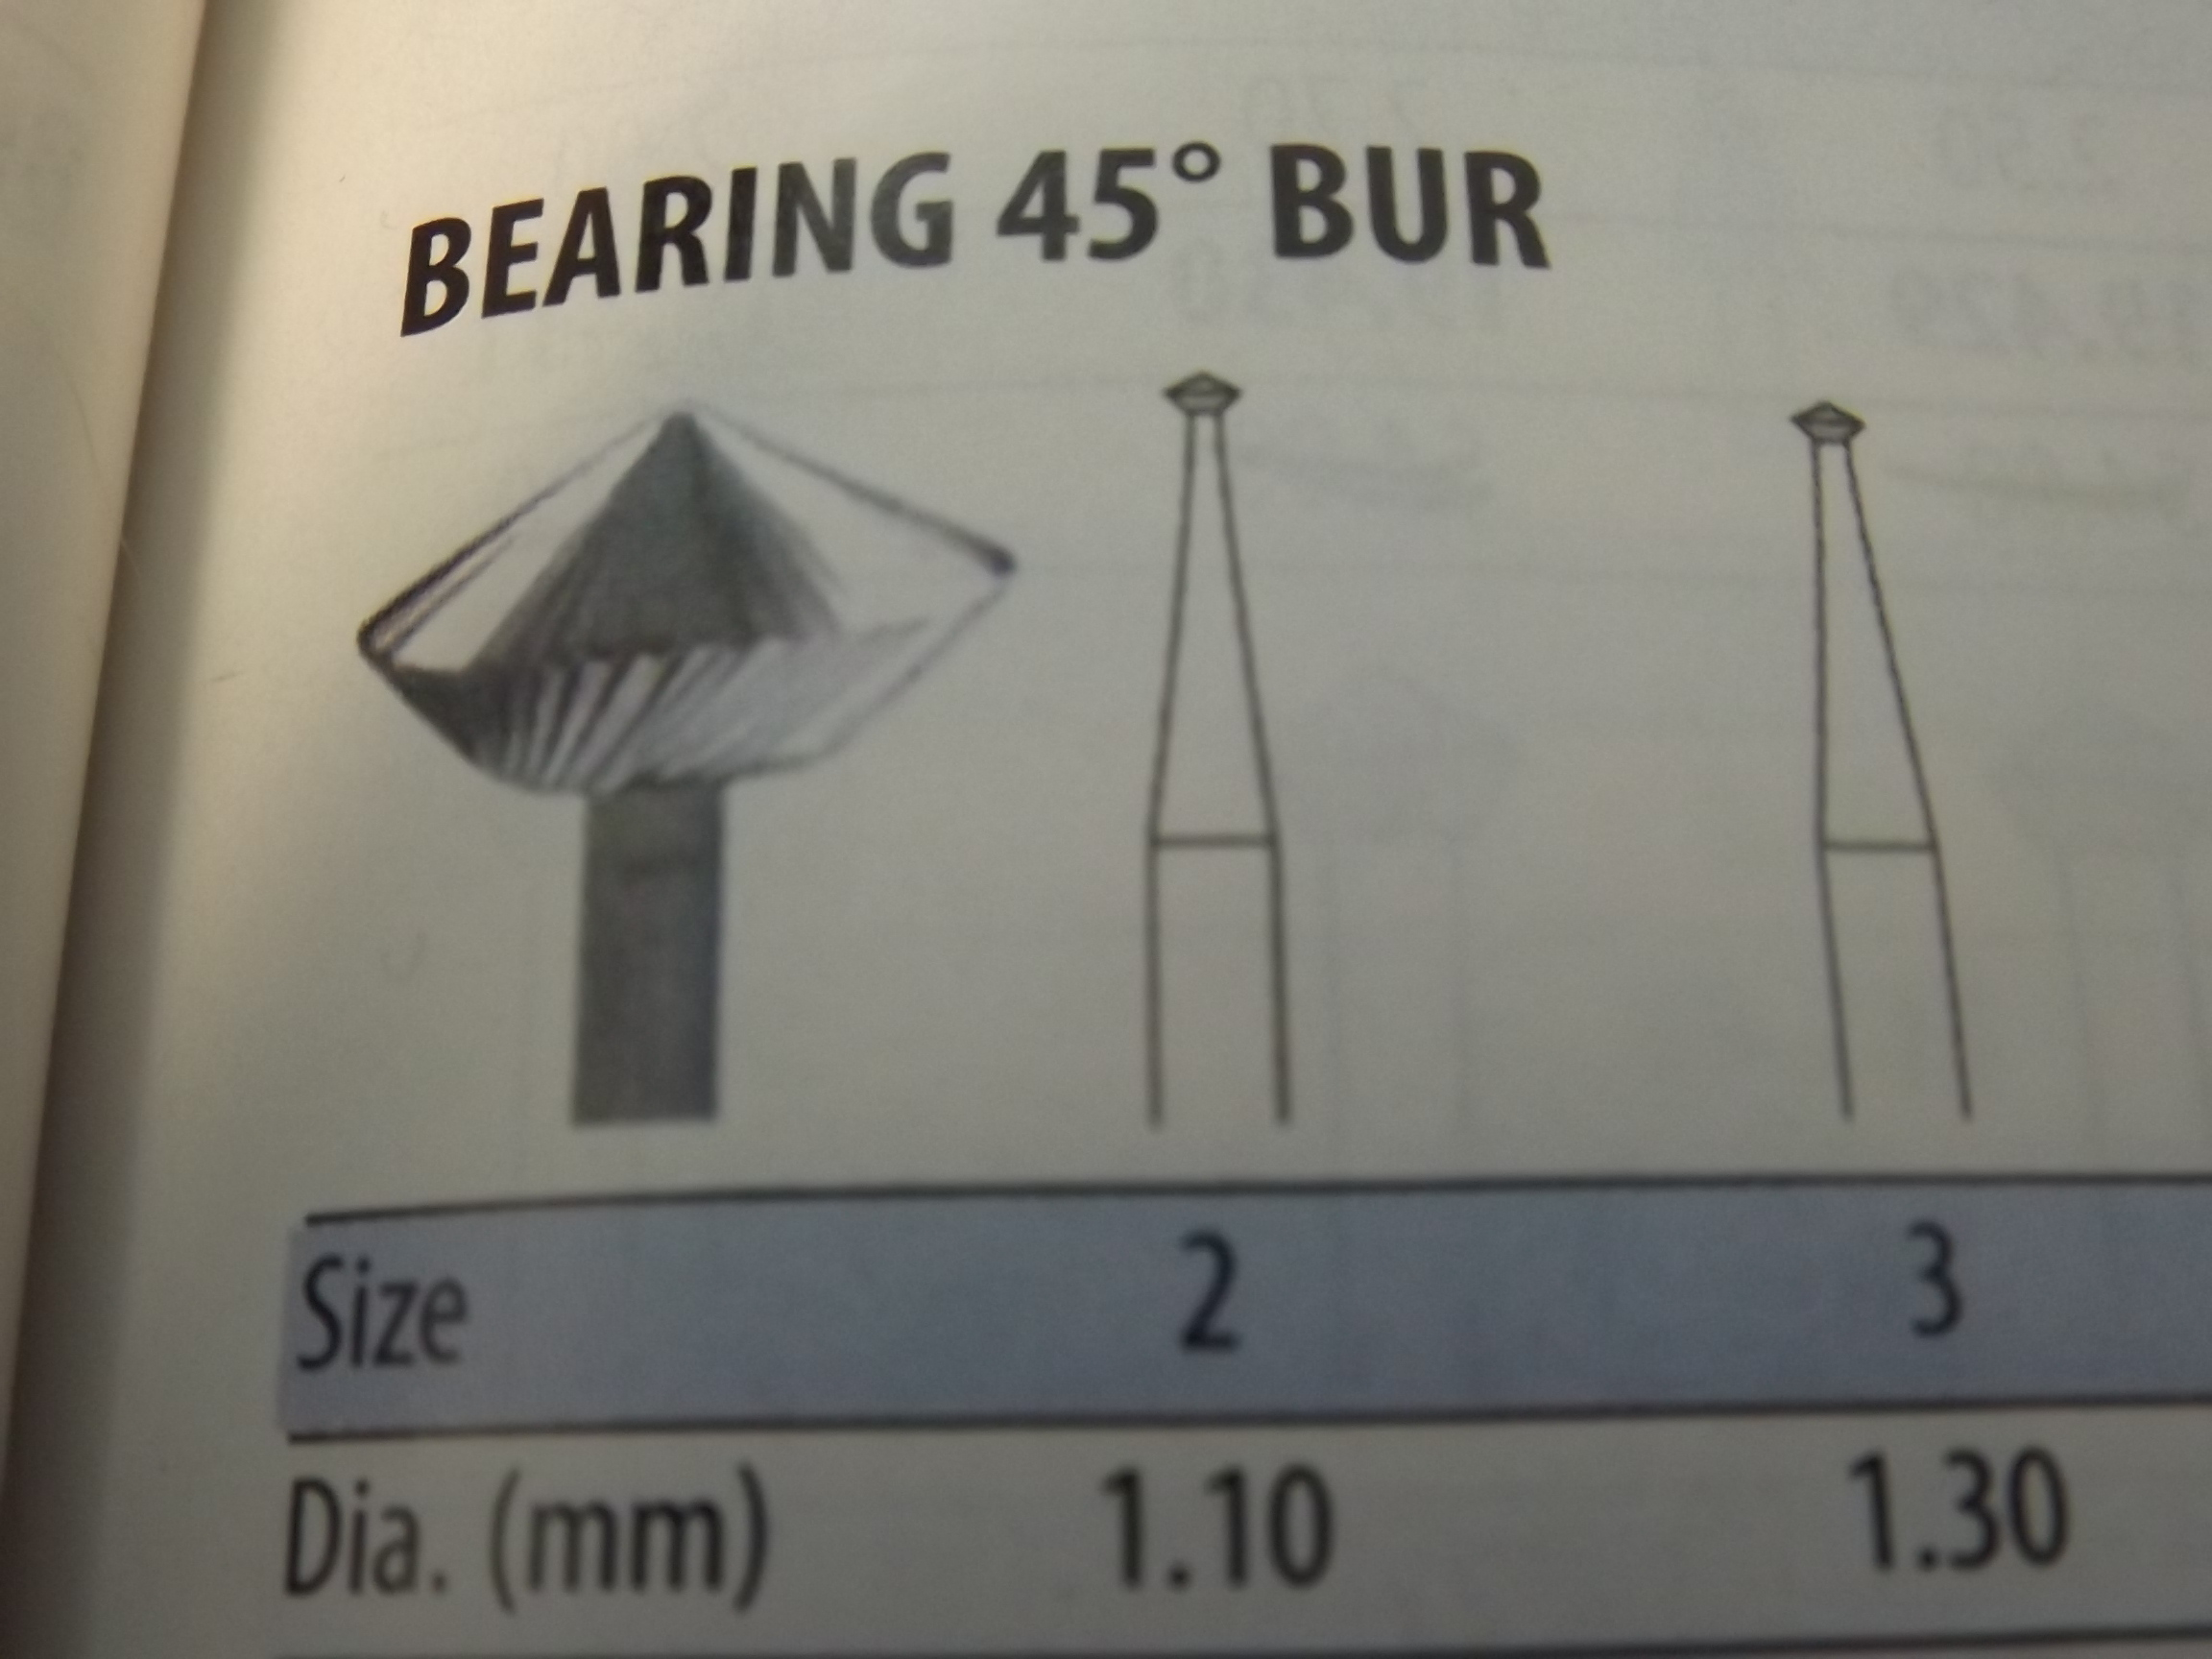 BR763/17 Hi Speed Steel 45* Bearing Burs #17--Grobet #19.397